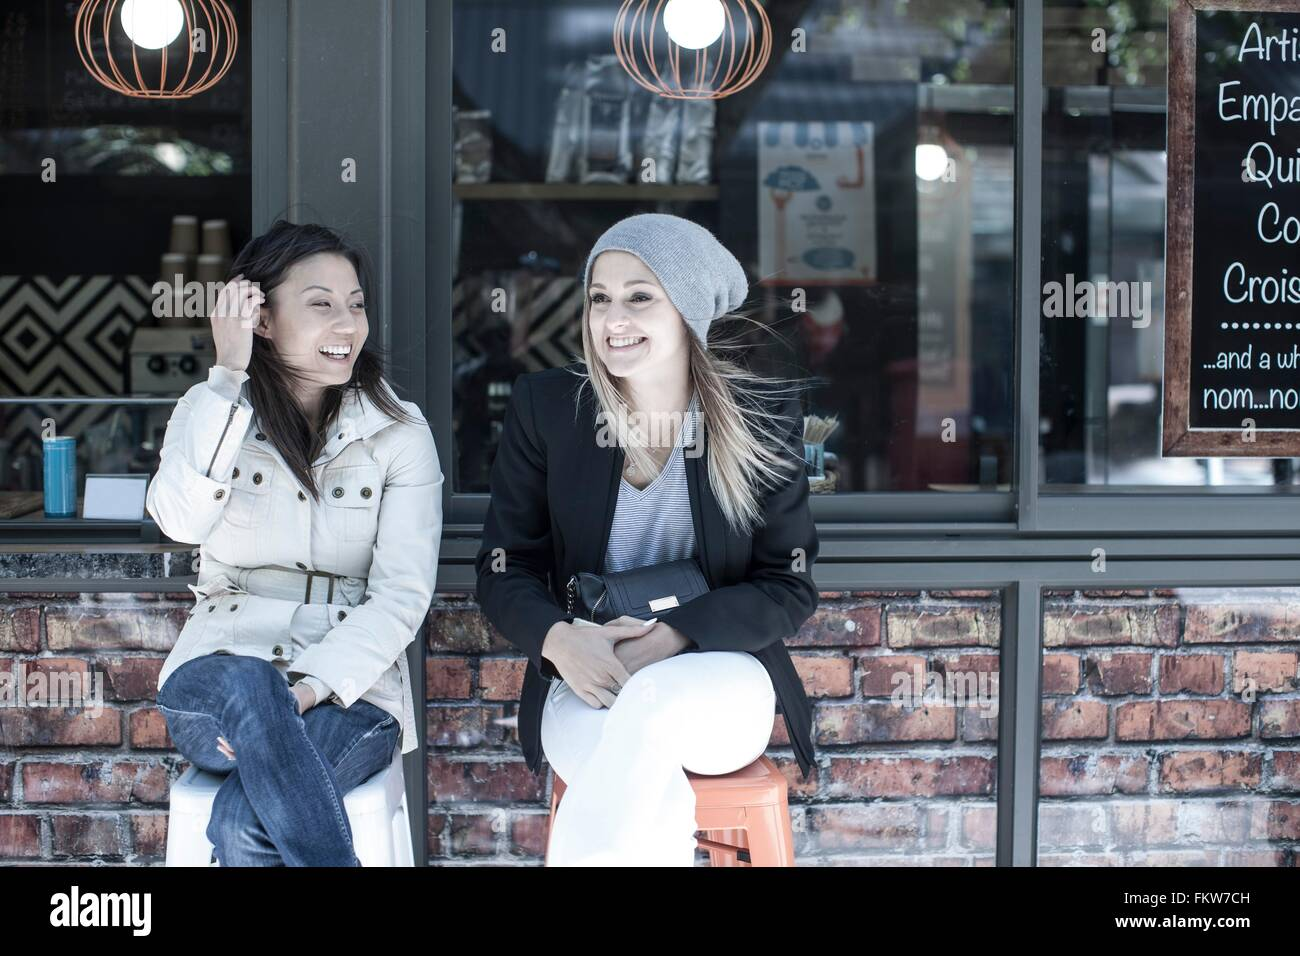 Two women friends sitting outside city cafe - Stock Image